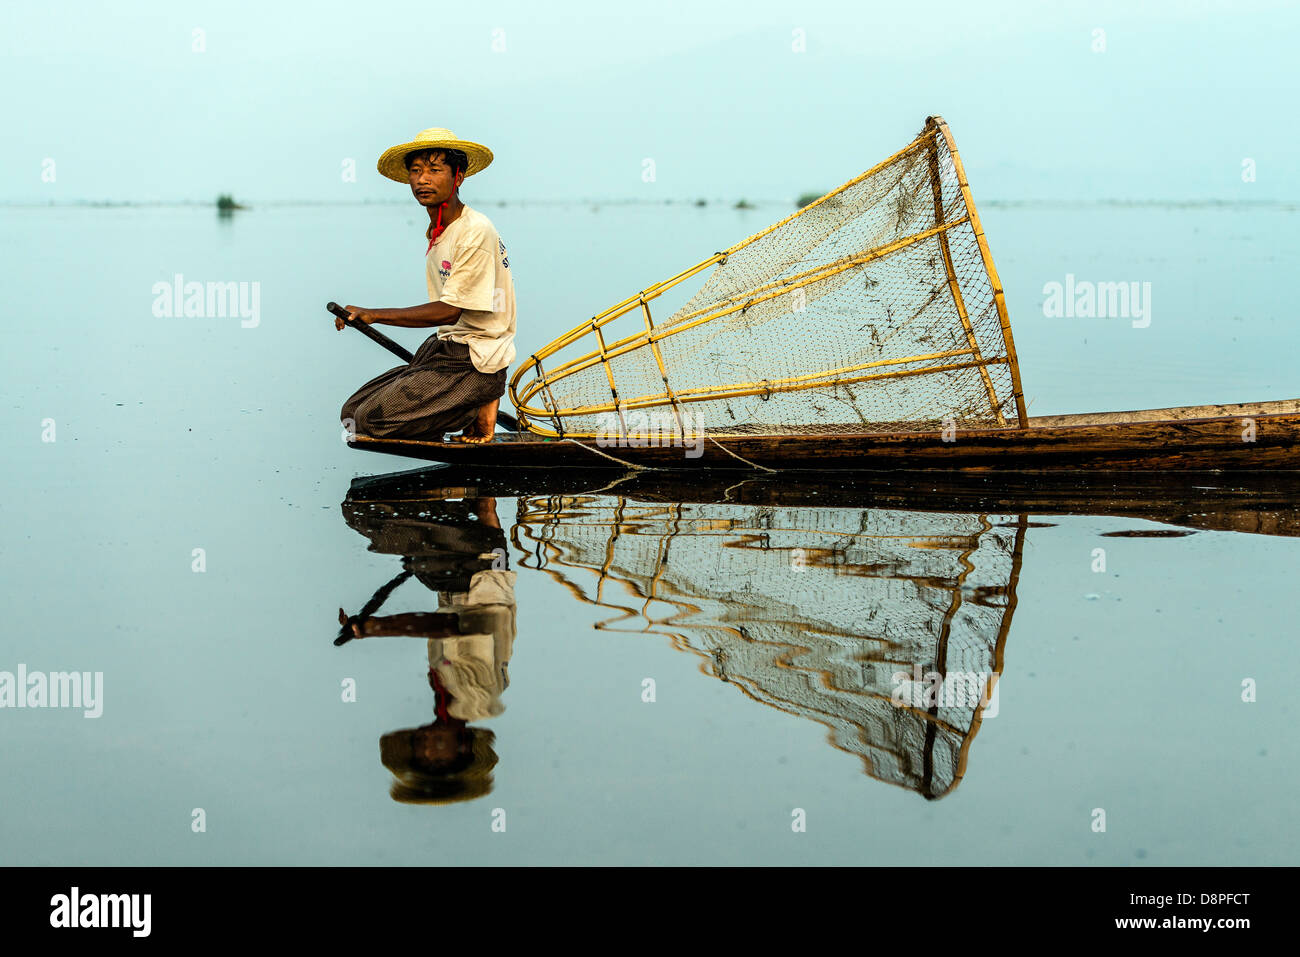 Fisherman fishing with net at Inle Lake Nyaungshwe Myanmar Burma - Stock Image